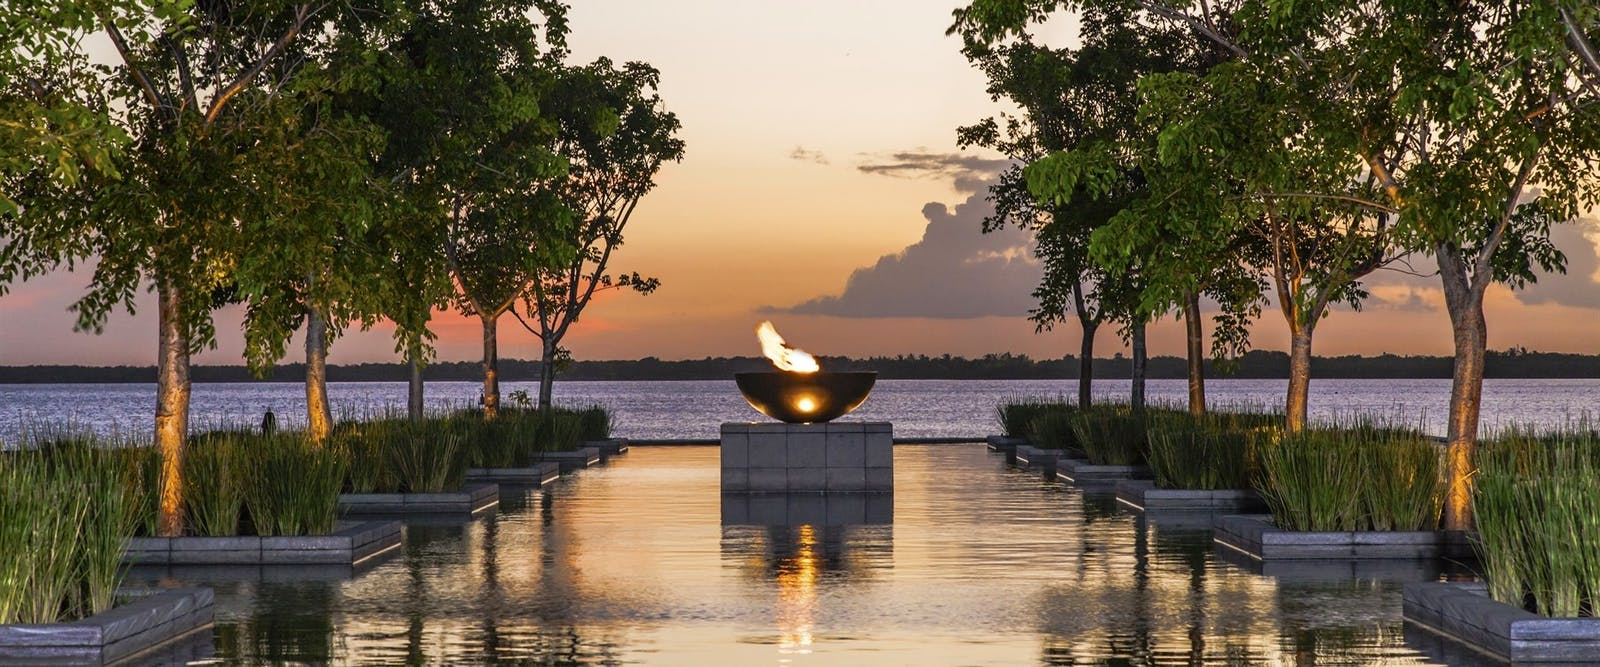 Reflecting pond at NIZUC Resort and Spa, Riviera Maya